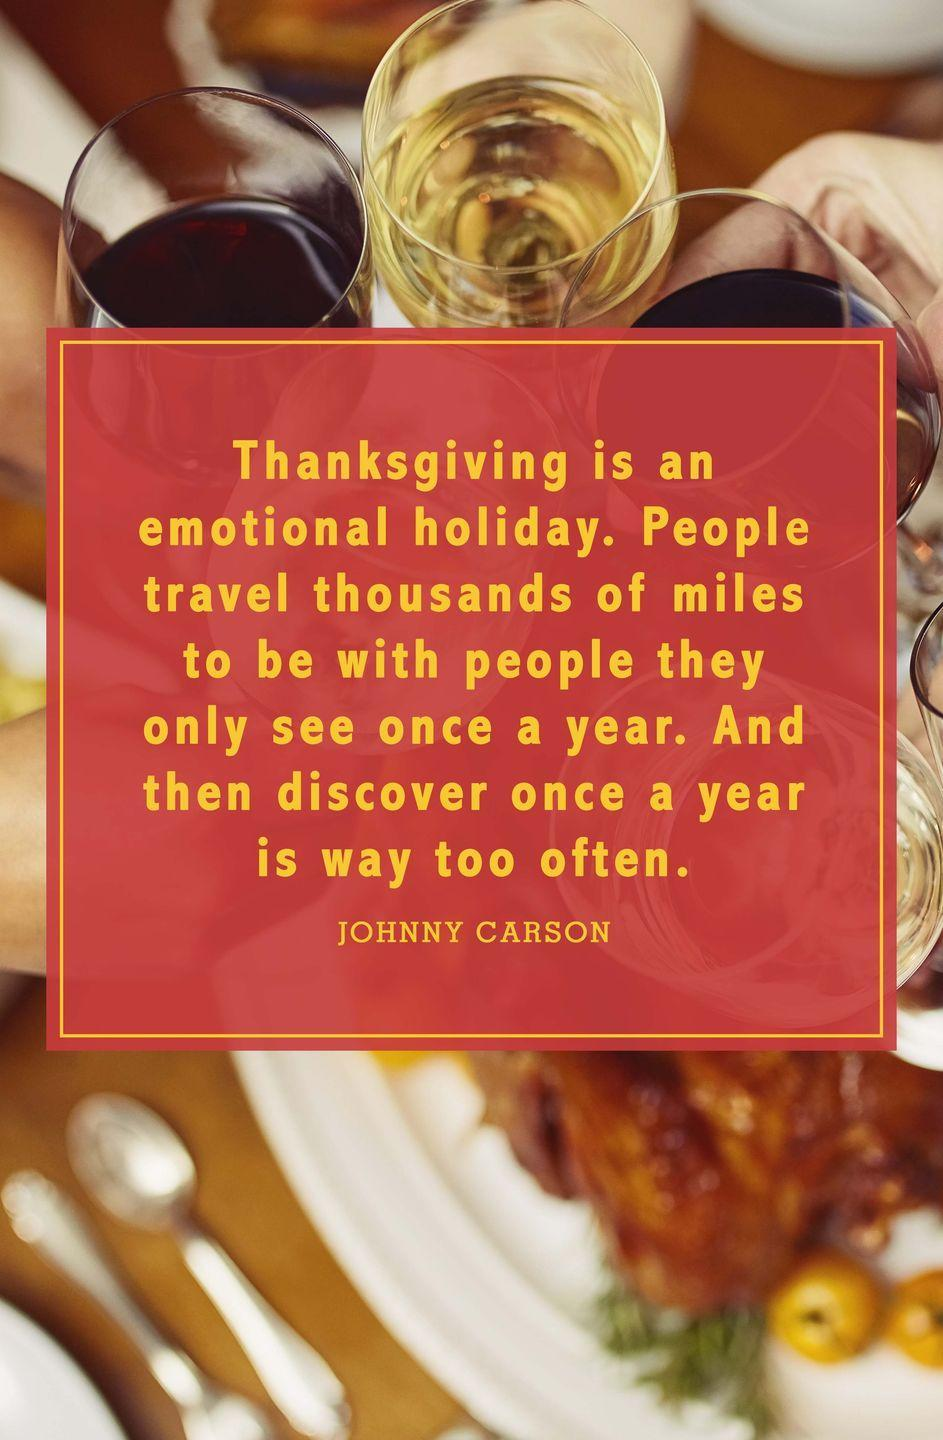 """<p>""""Thanksgiving is an emotional holiday. People travel thousands of miles to be with people they only see once a year. And then discover once a year is way too often.""""</p>"""